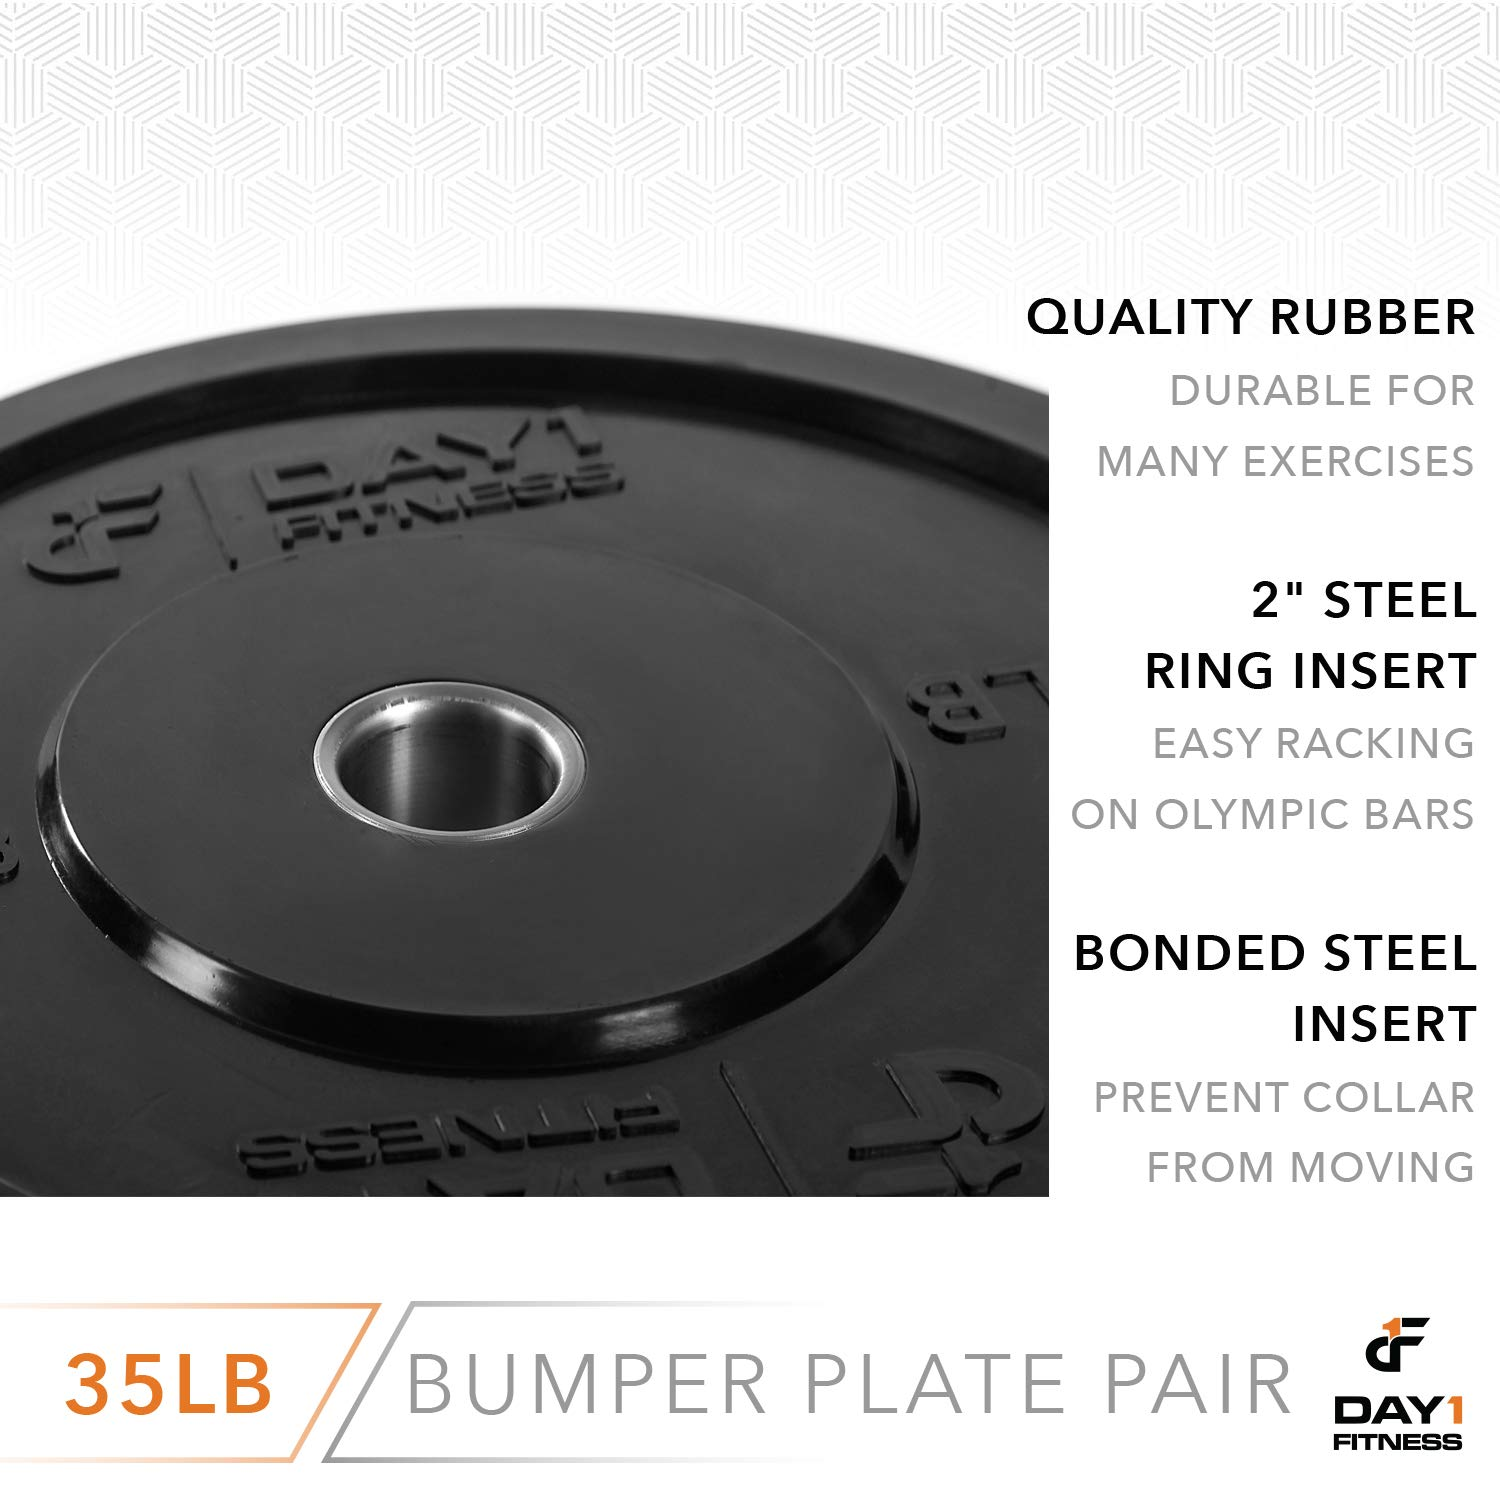 "Day 1 Fitness Olympic Bumper Weighted Plate 2"" for Barbells, Bars – 35 lb Set of 2 Plates - Shock-Absorbing, Minimal Bounce Steel Weights with Bumpers for Lifting, Strength Training, and Working Out by Day 1 Fitness (Image #5)"